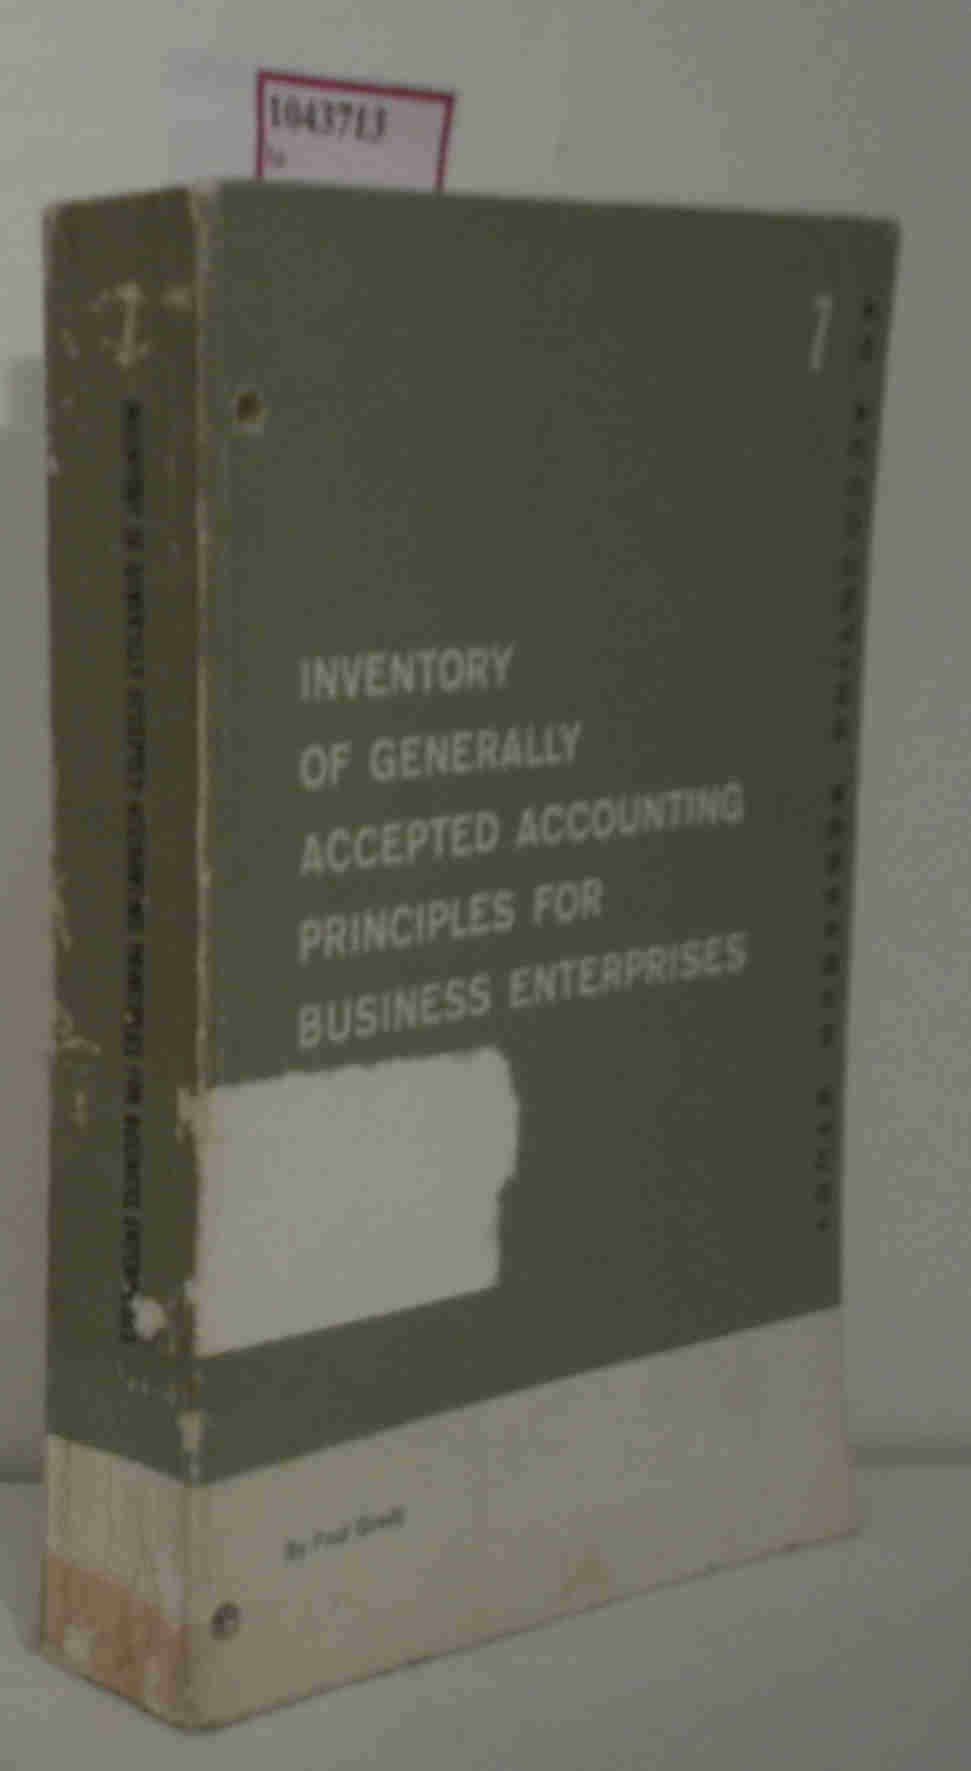 Inventory of Generally Accepted Accounting Prinziples for Business Enterprises. (=Accounting Research Study, Vol. 7).